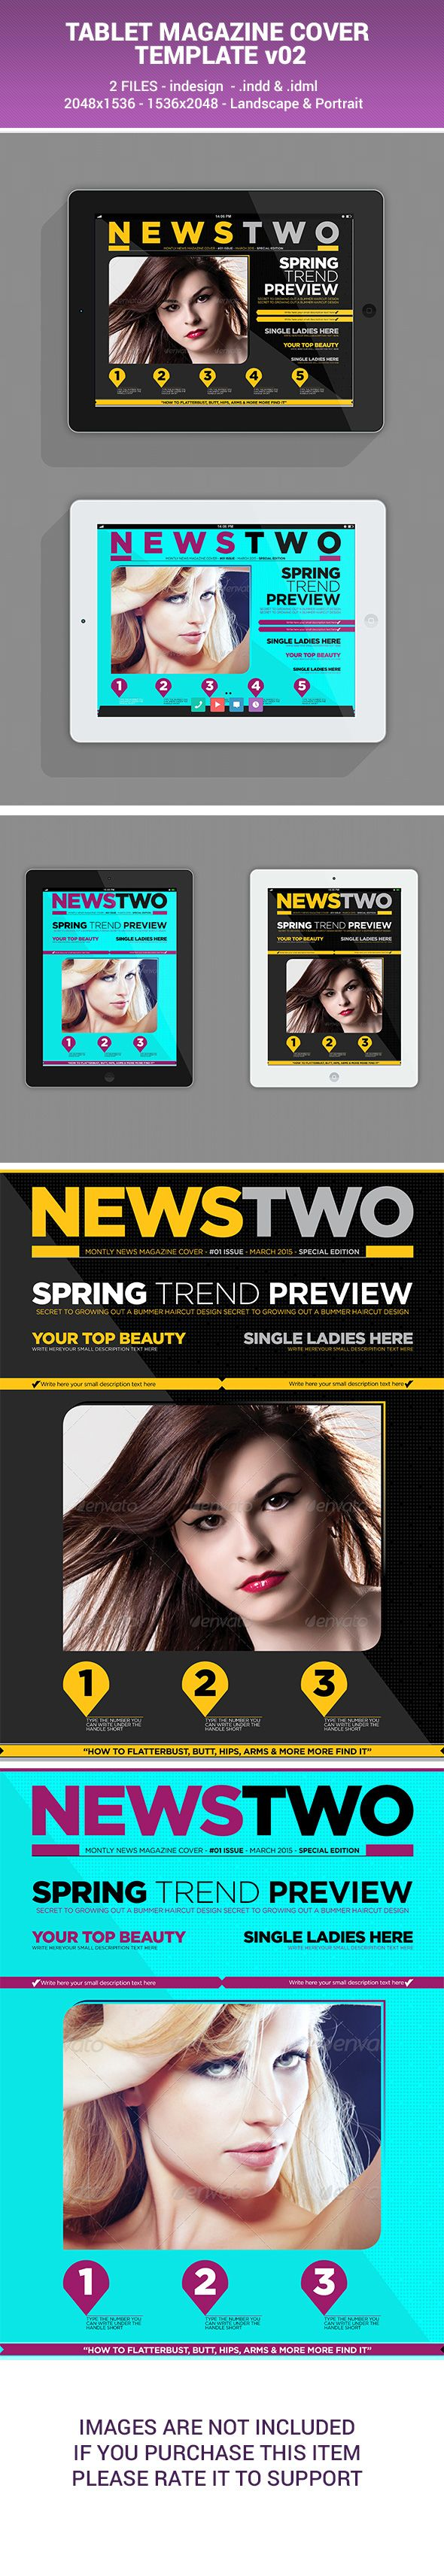 Best 25 magazine cover template ideas on pinterest booklet ipad and tablet magazine cover template digital magazine digital publishing tablet magazine pronofoot35fo Gallery